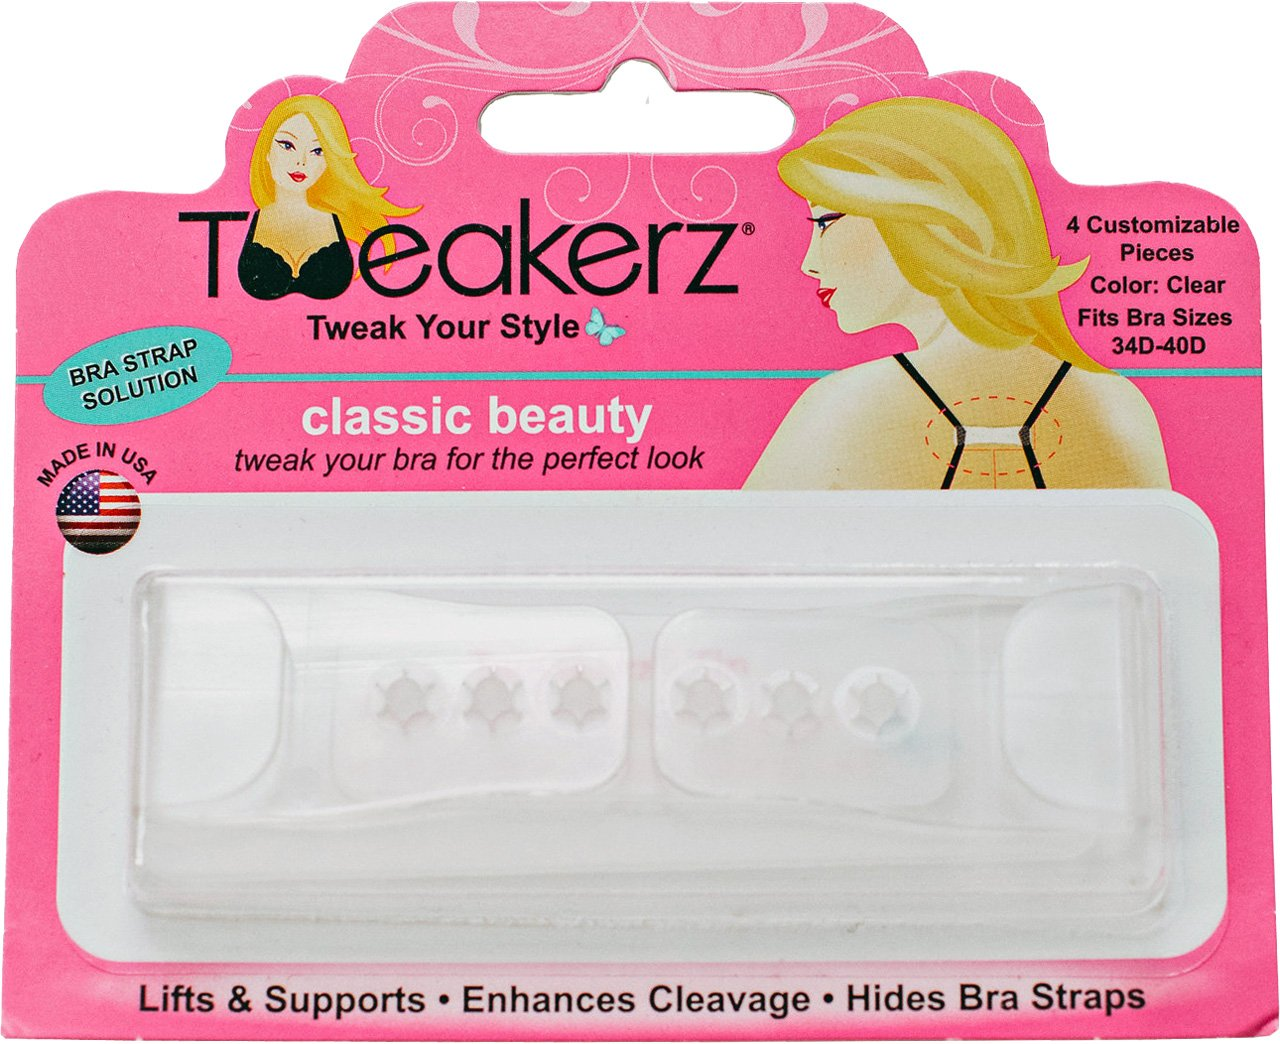 Select Second Product - www.tweakerz.com